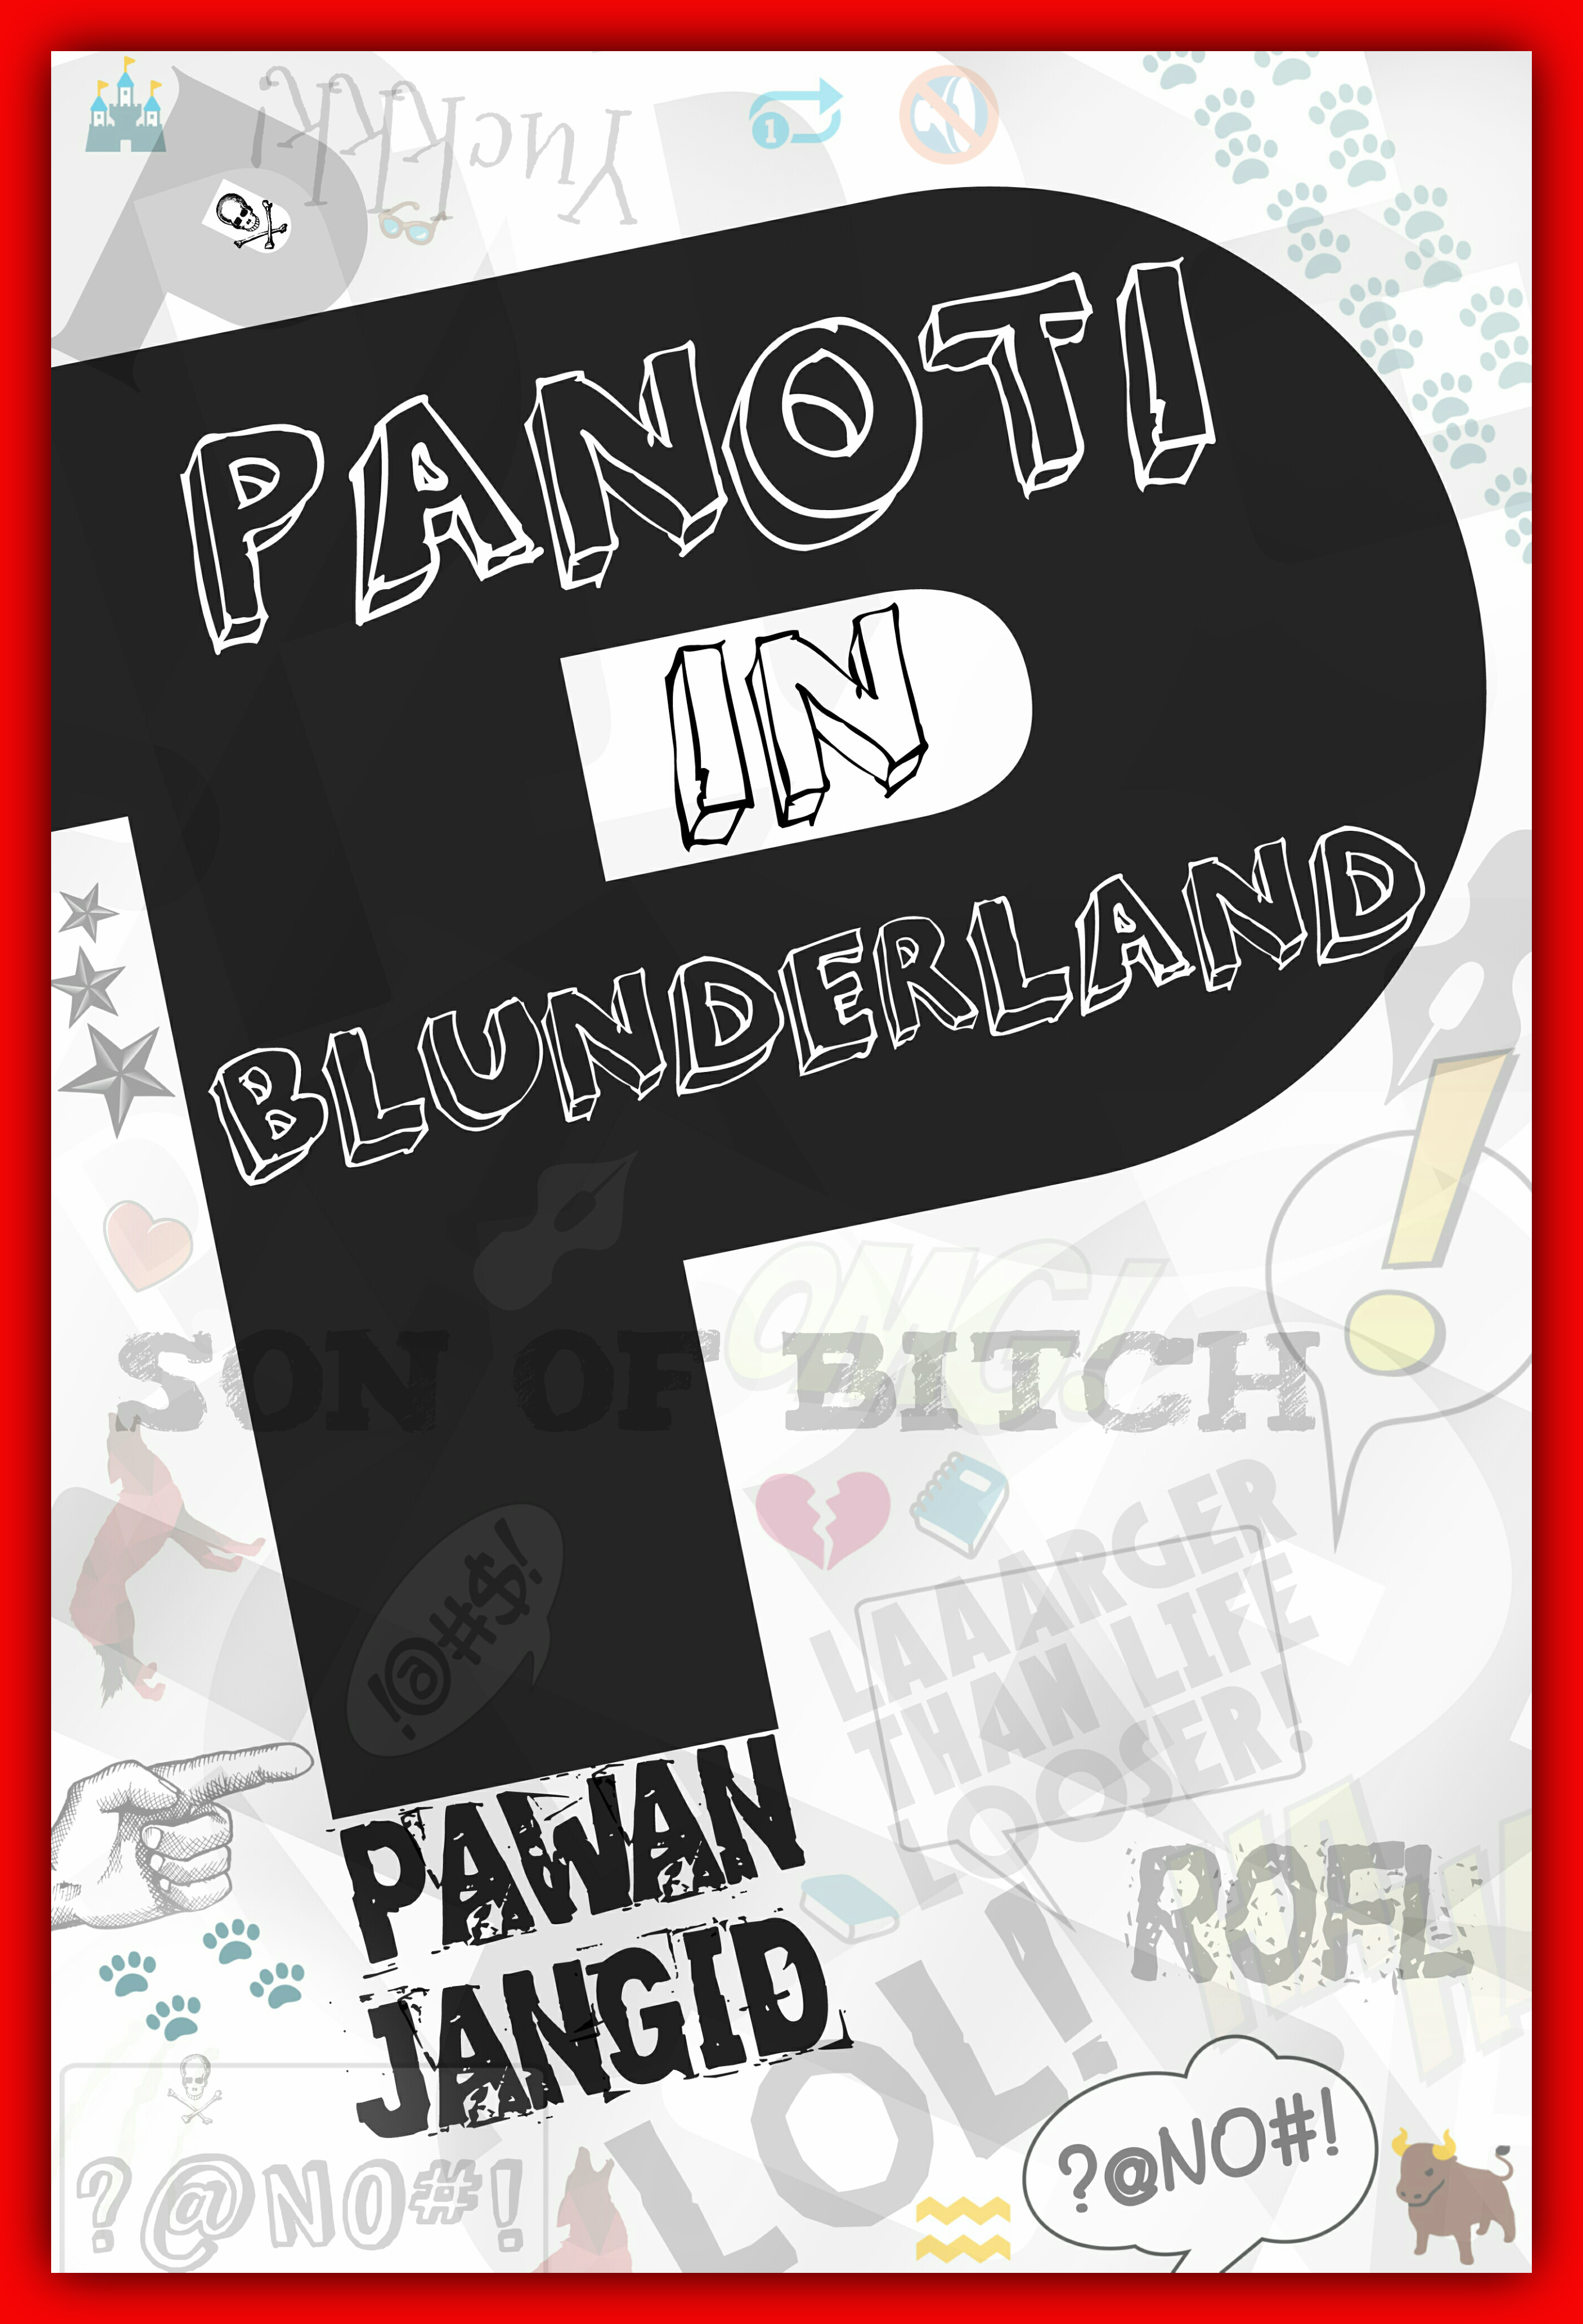 Panoti in Blunderland: A tale of friendship, love and courage